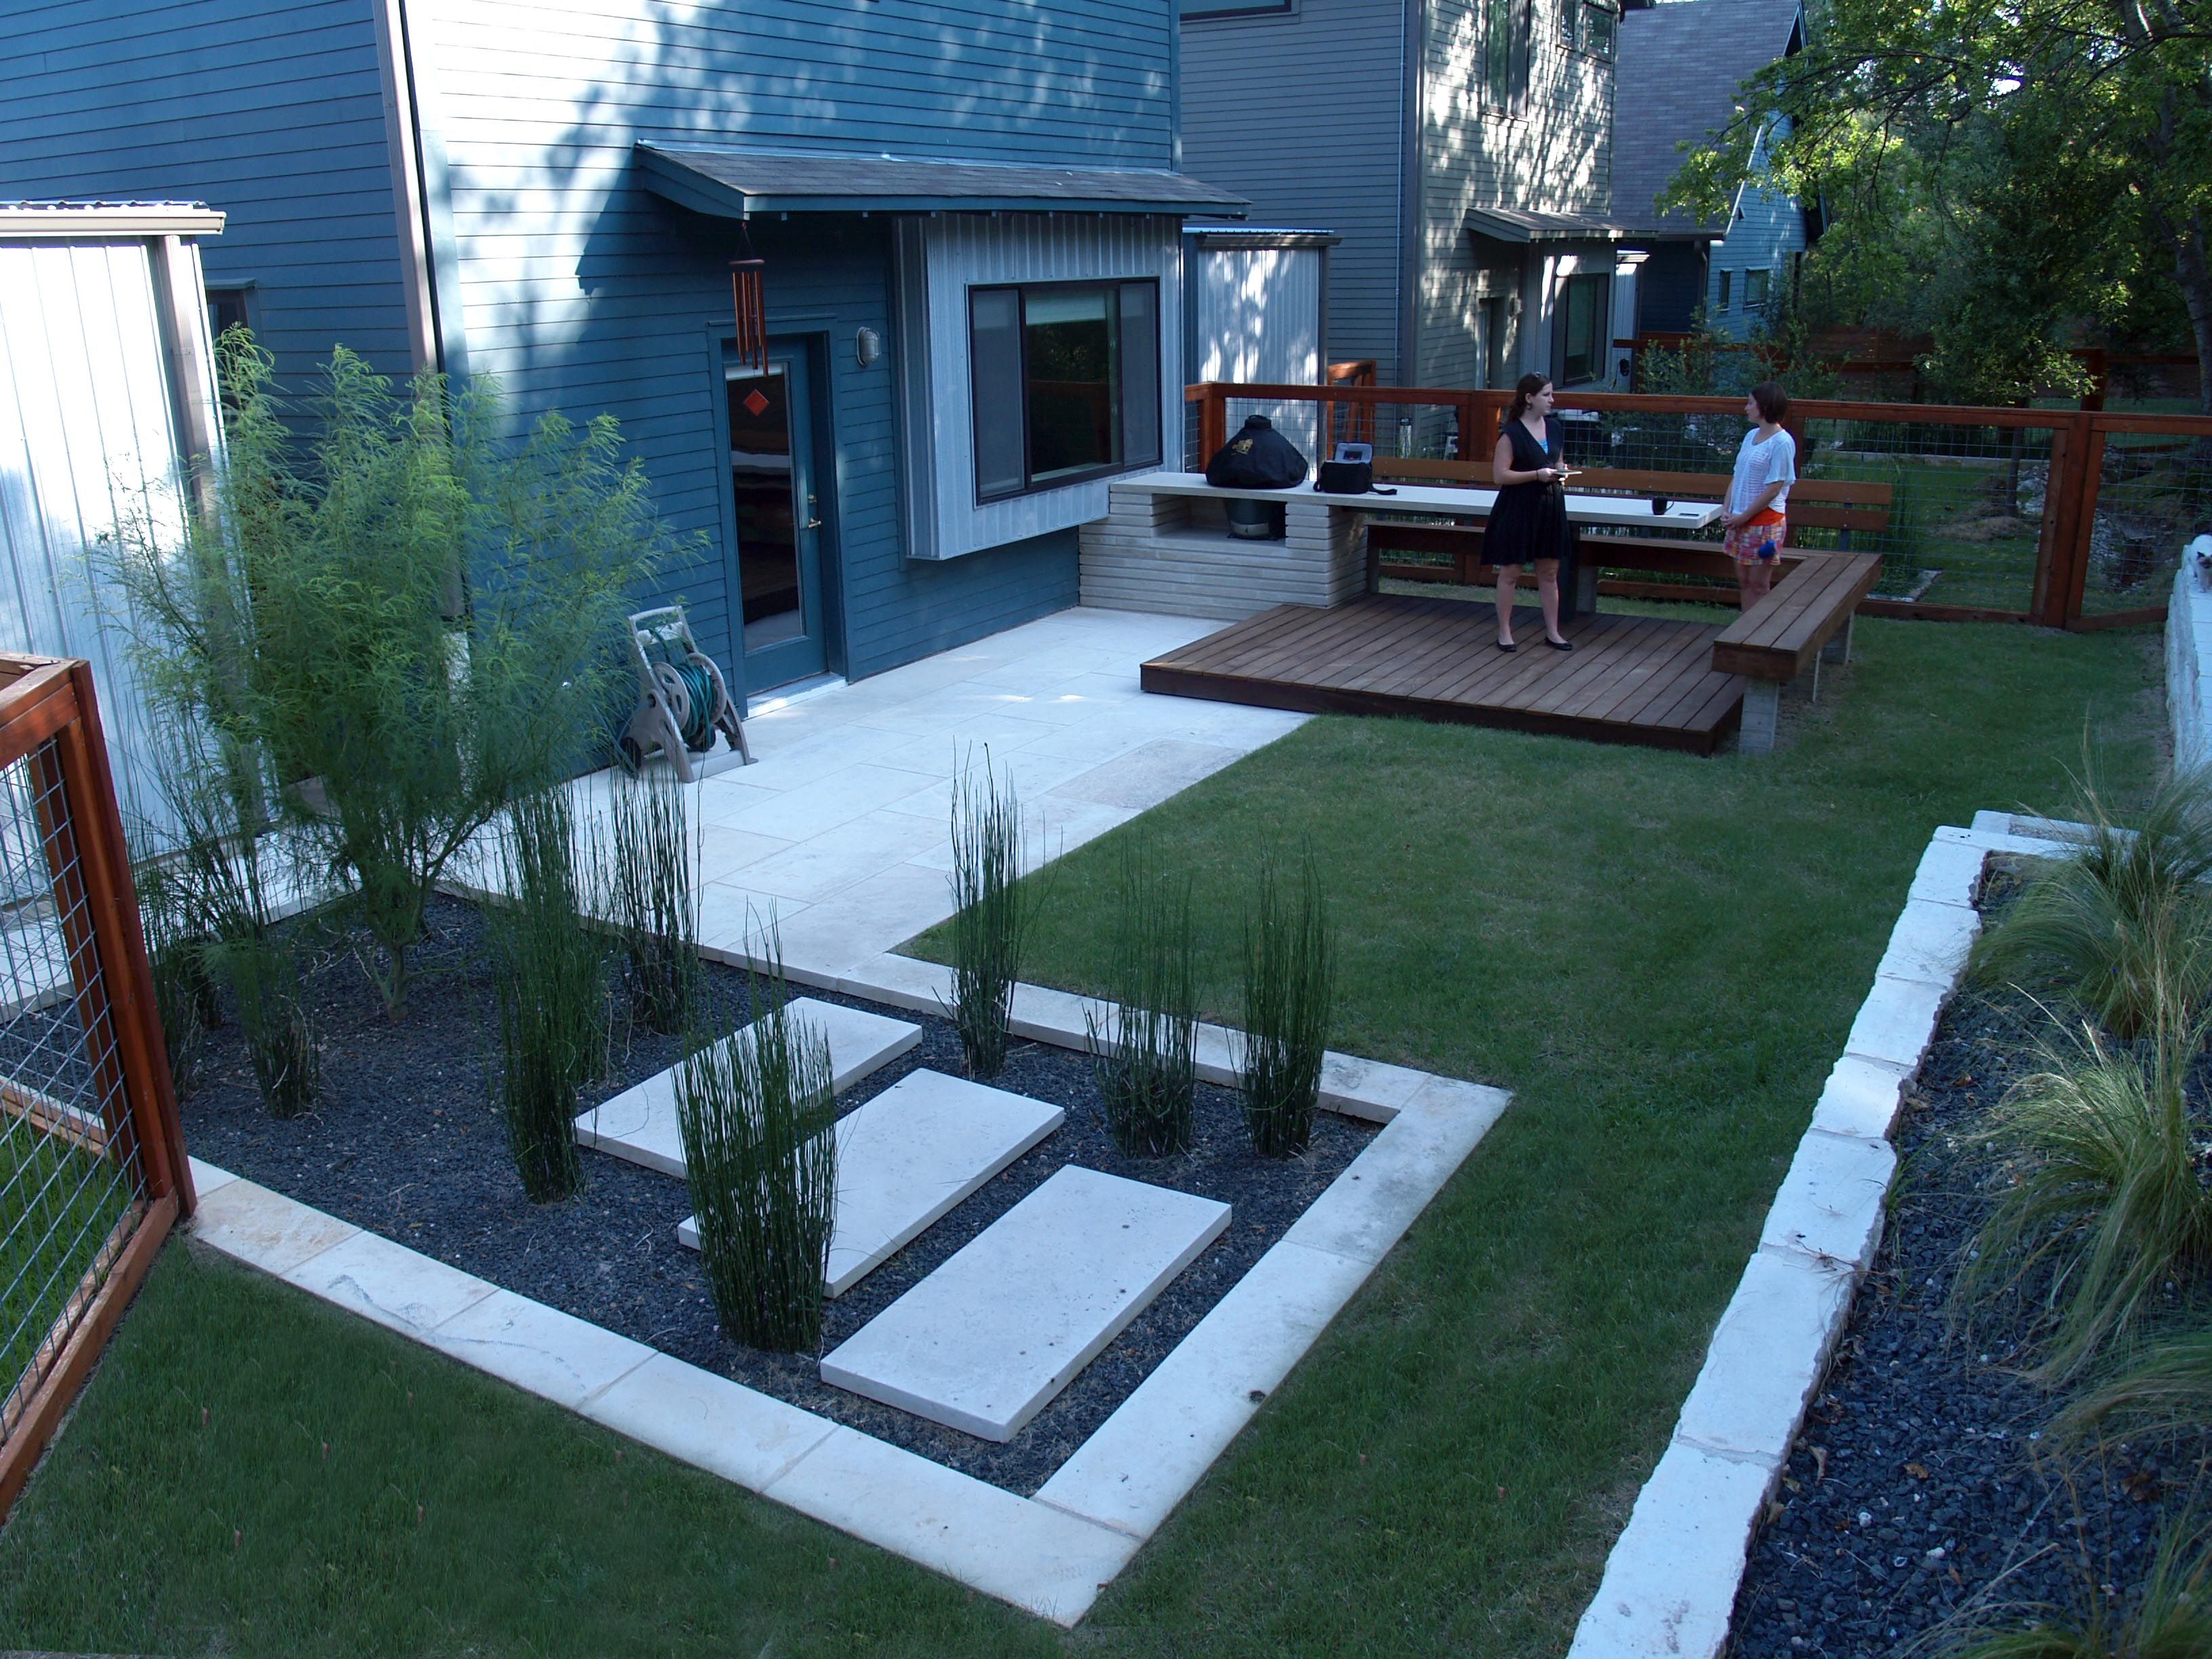 Merveilleux Backyard Design With Kitchen Dining And Living Modern Small Backyard Cool  Stepping Stones